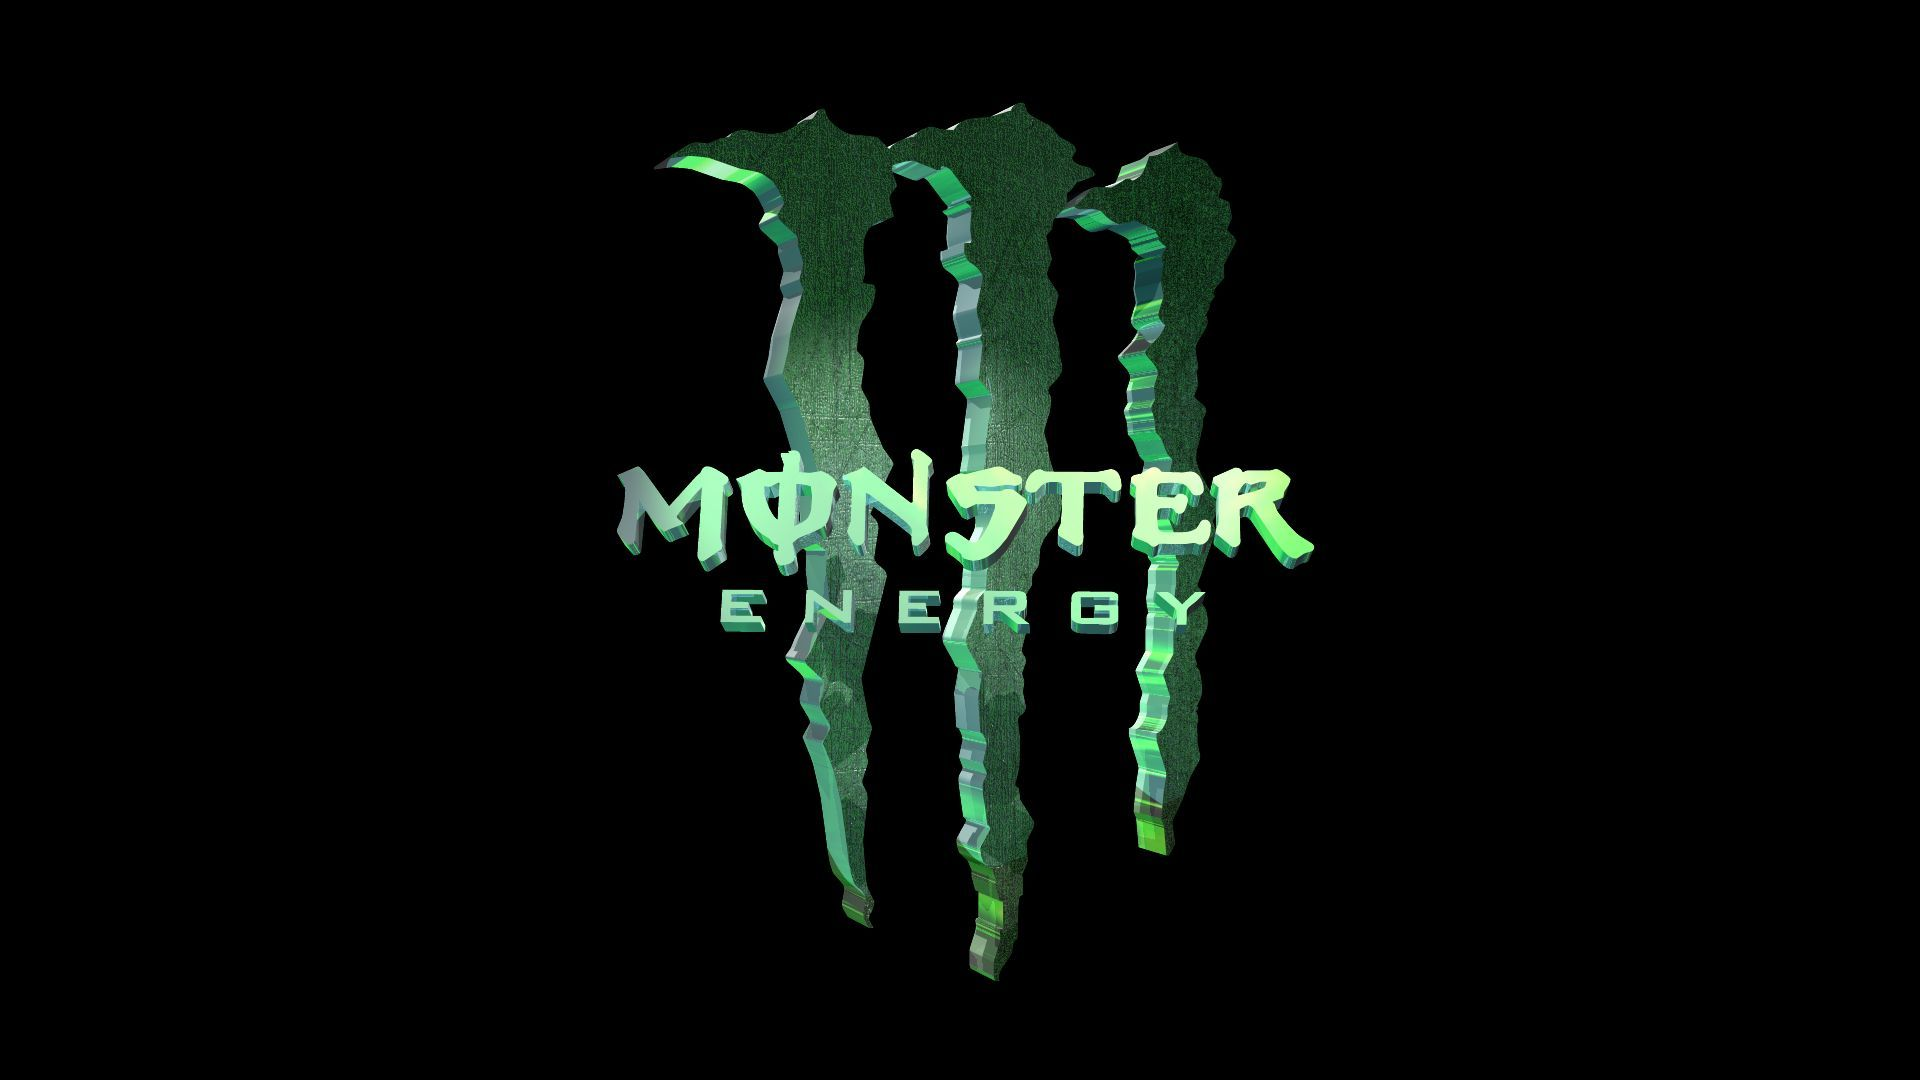 Monster energy wallpaper collection for free download hd monster energy wallpaper collection for free download voltagebd Choice Image